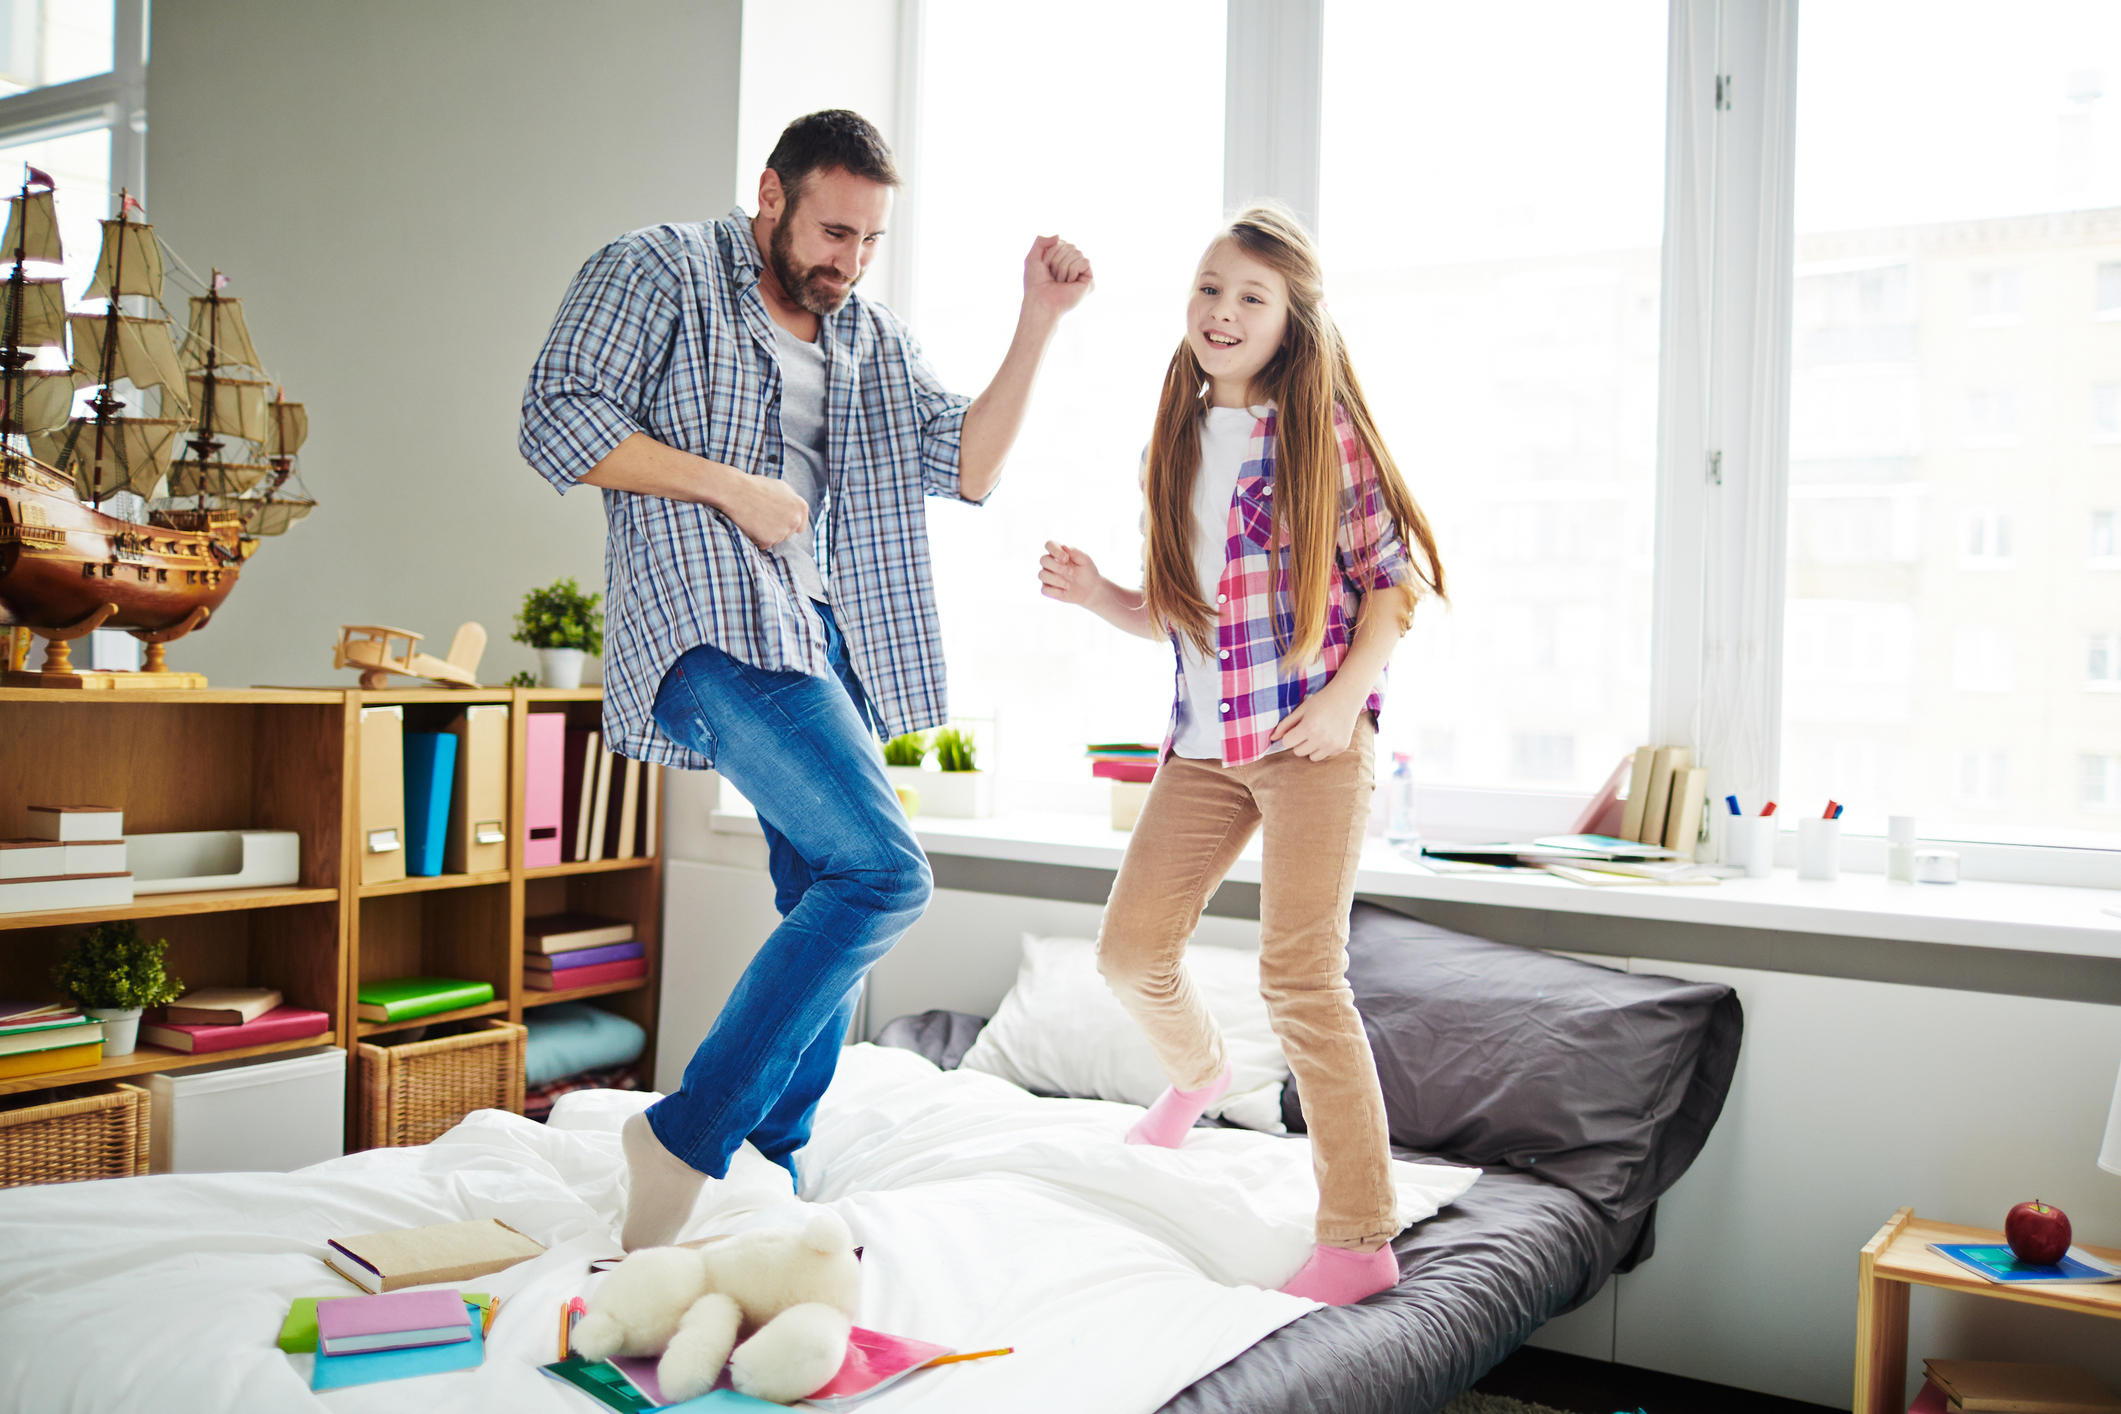 kids dancing on a bed